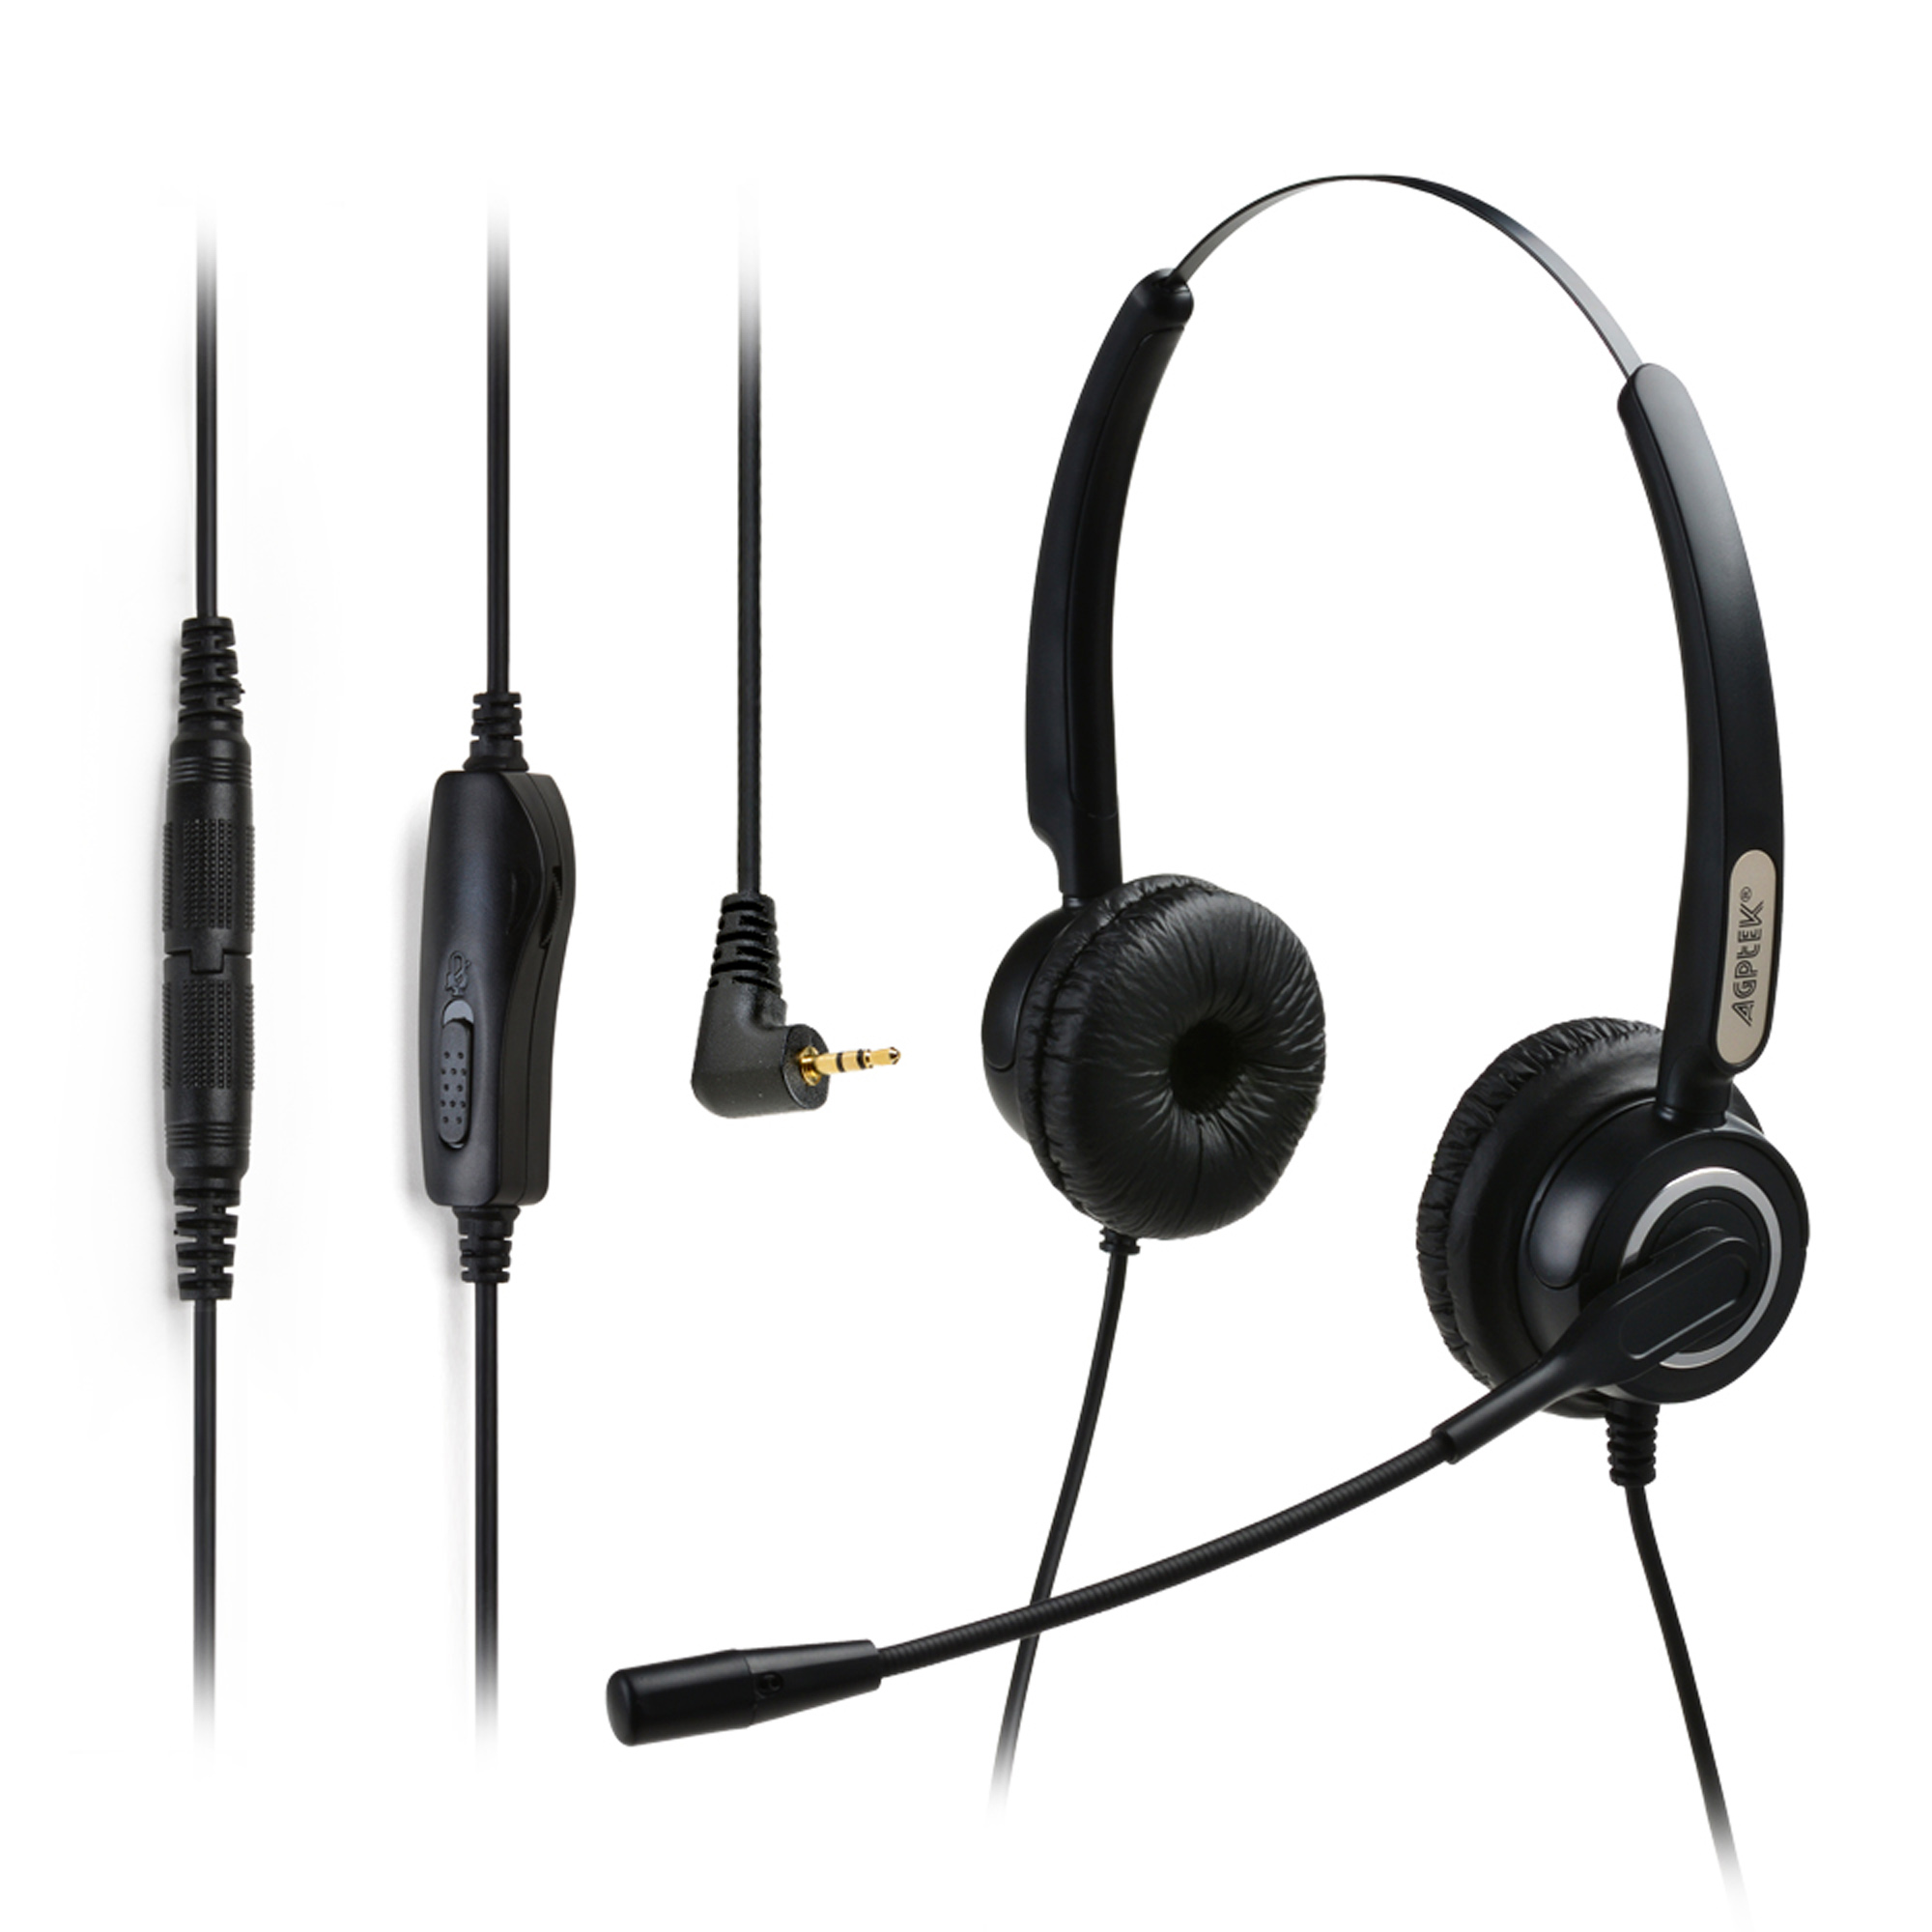 AGPtek Hands-free 2.5mm Binaural Telephone Headset w/ Noise Canceling Mic + 3.5MM QD + Volume Mute Black